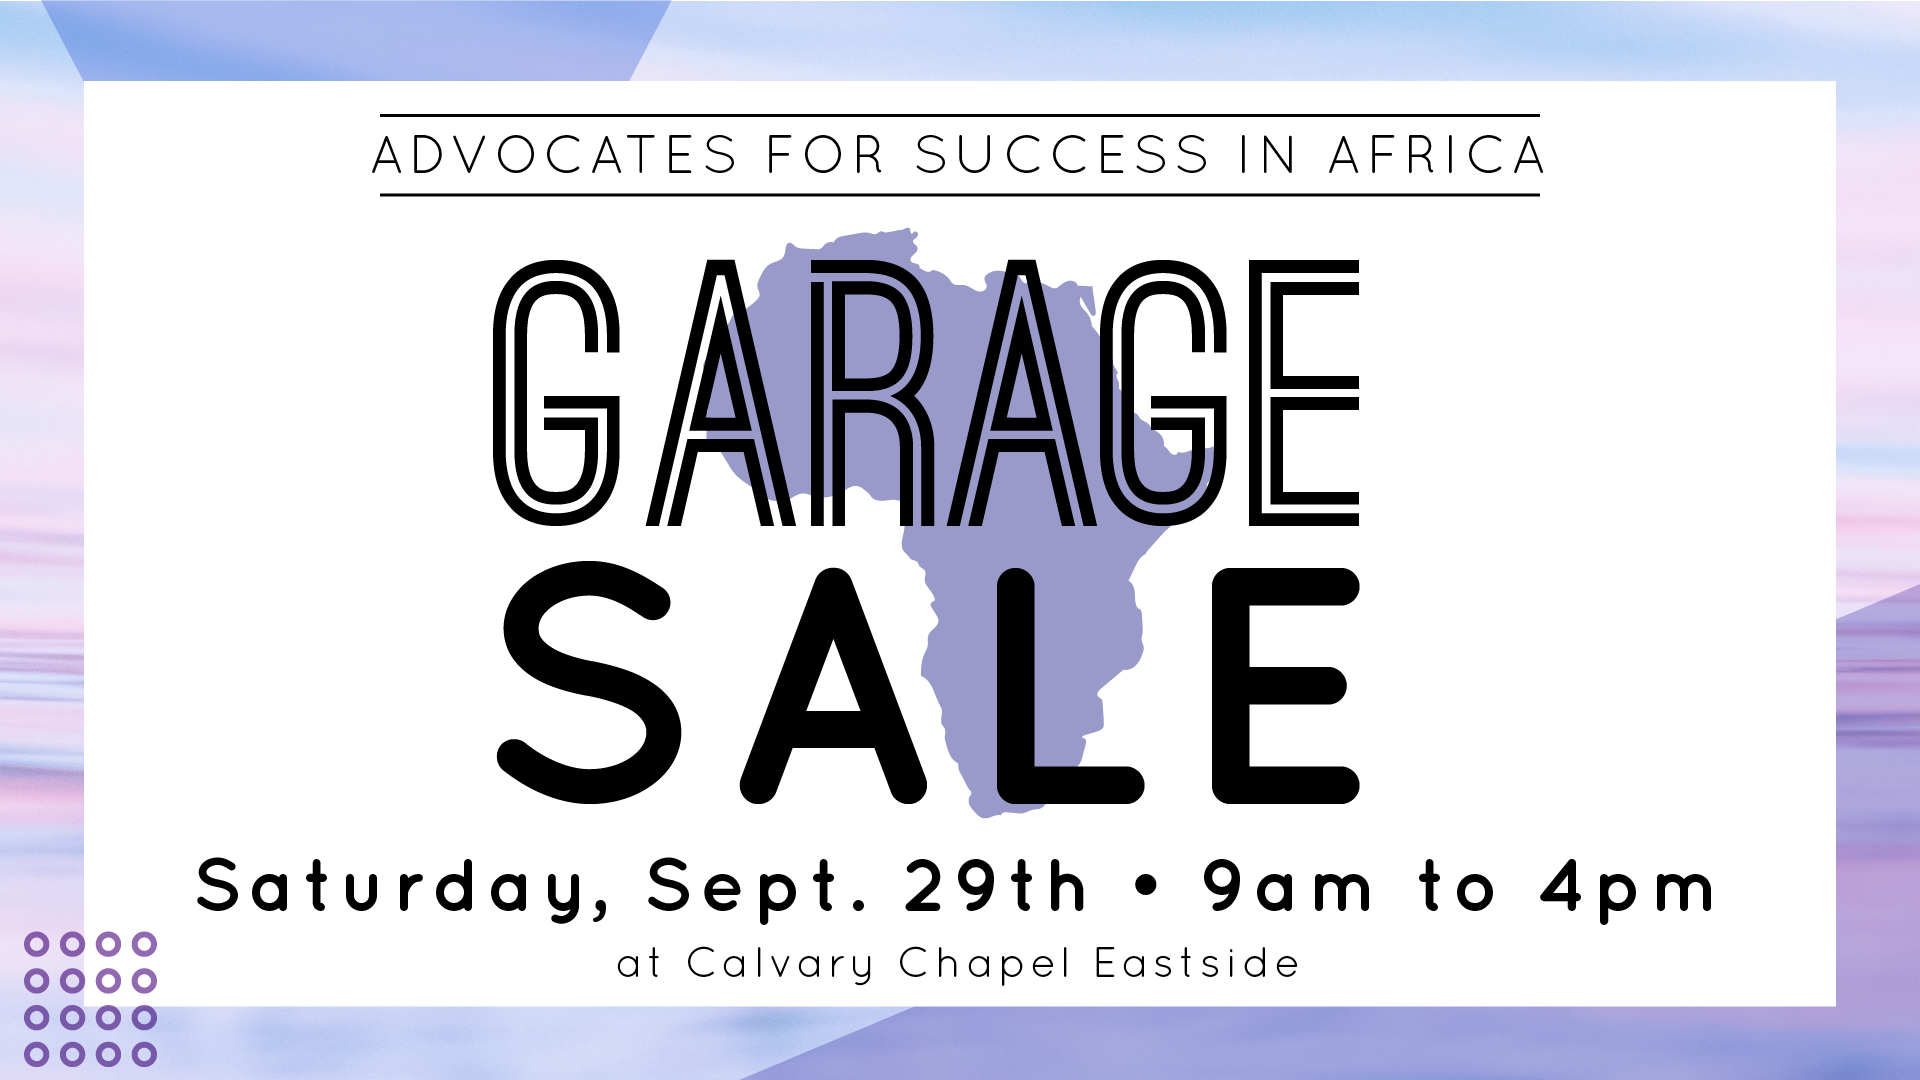 Zambia Garage Sale 2018 Slide 1.png